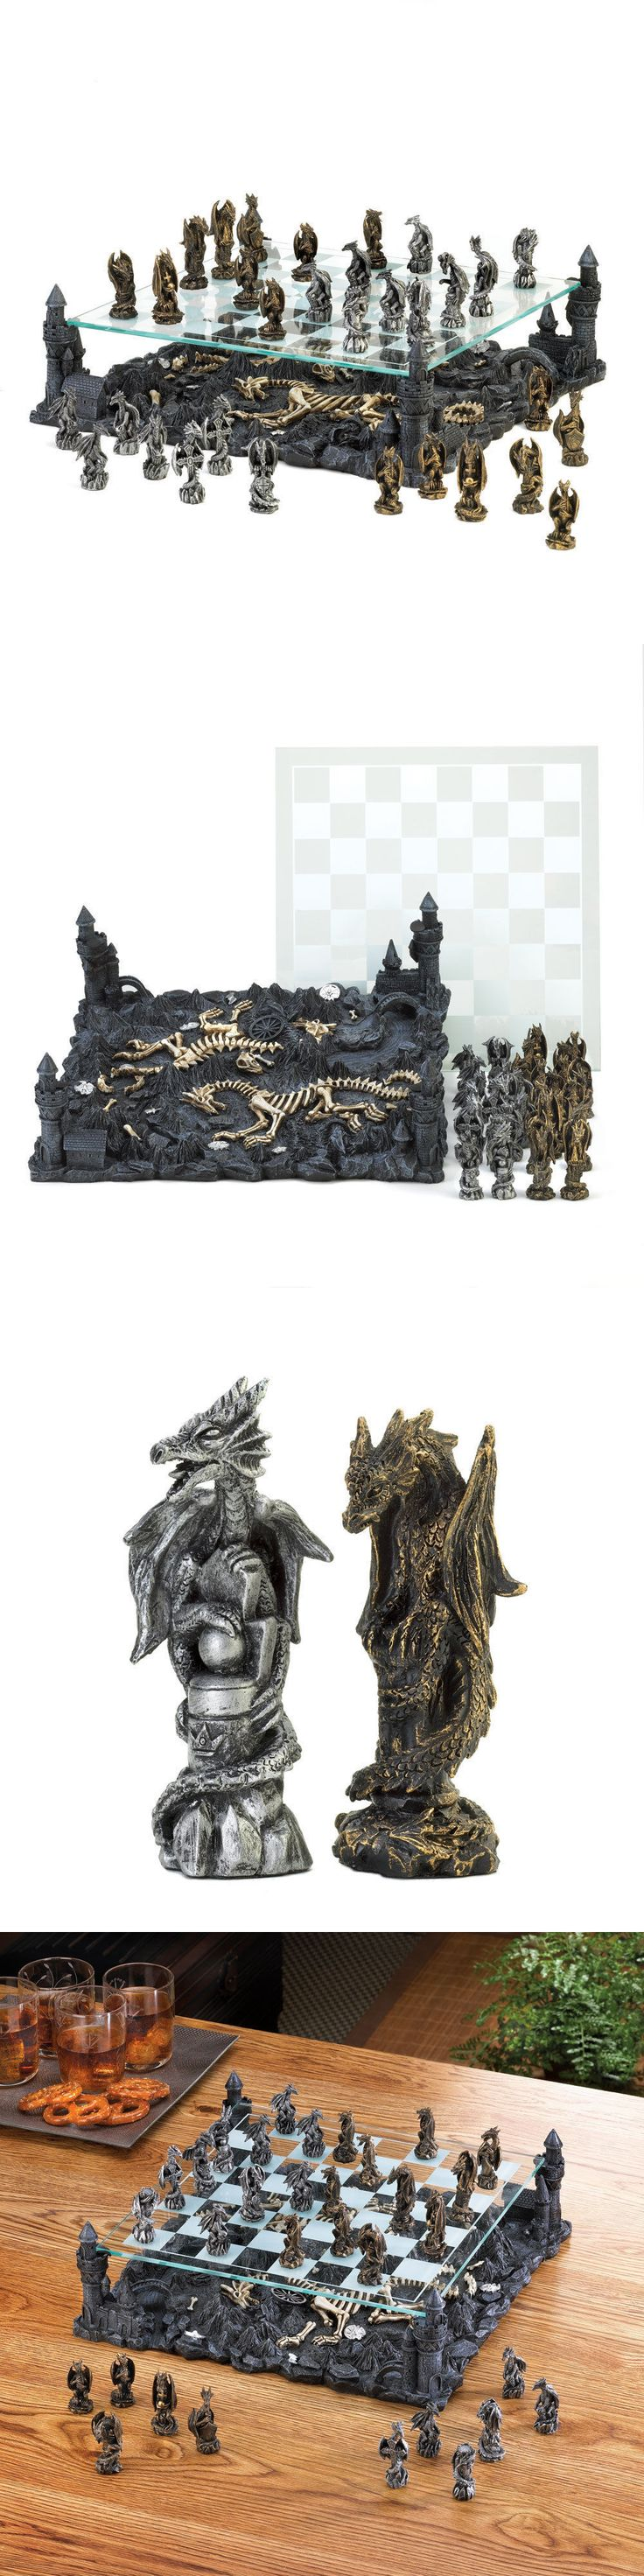 Contemporary Chess 40856: Black Dragon Chess Set Glass Board W Polyresin Base -> BUY IT NOW ONLY: $138.47 on eBay!